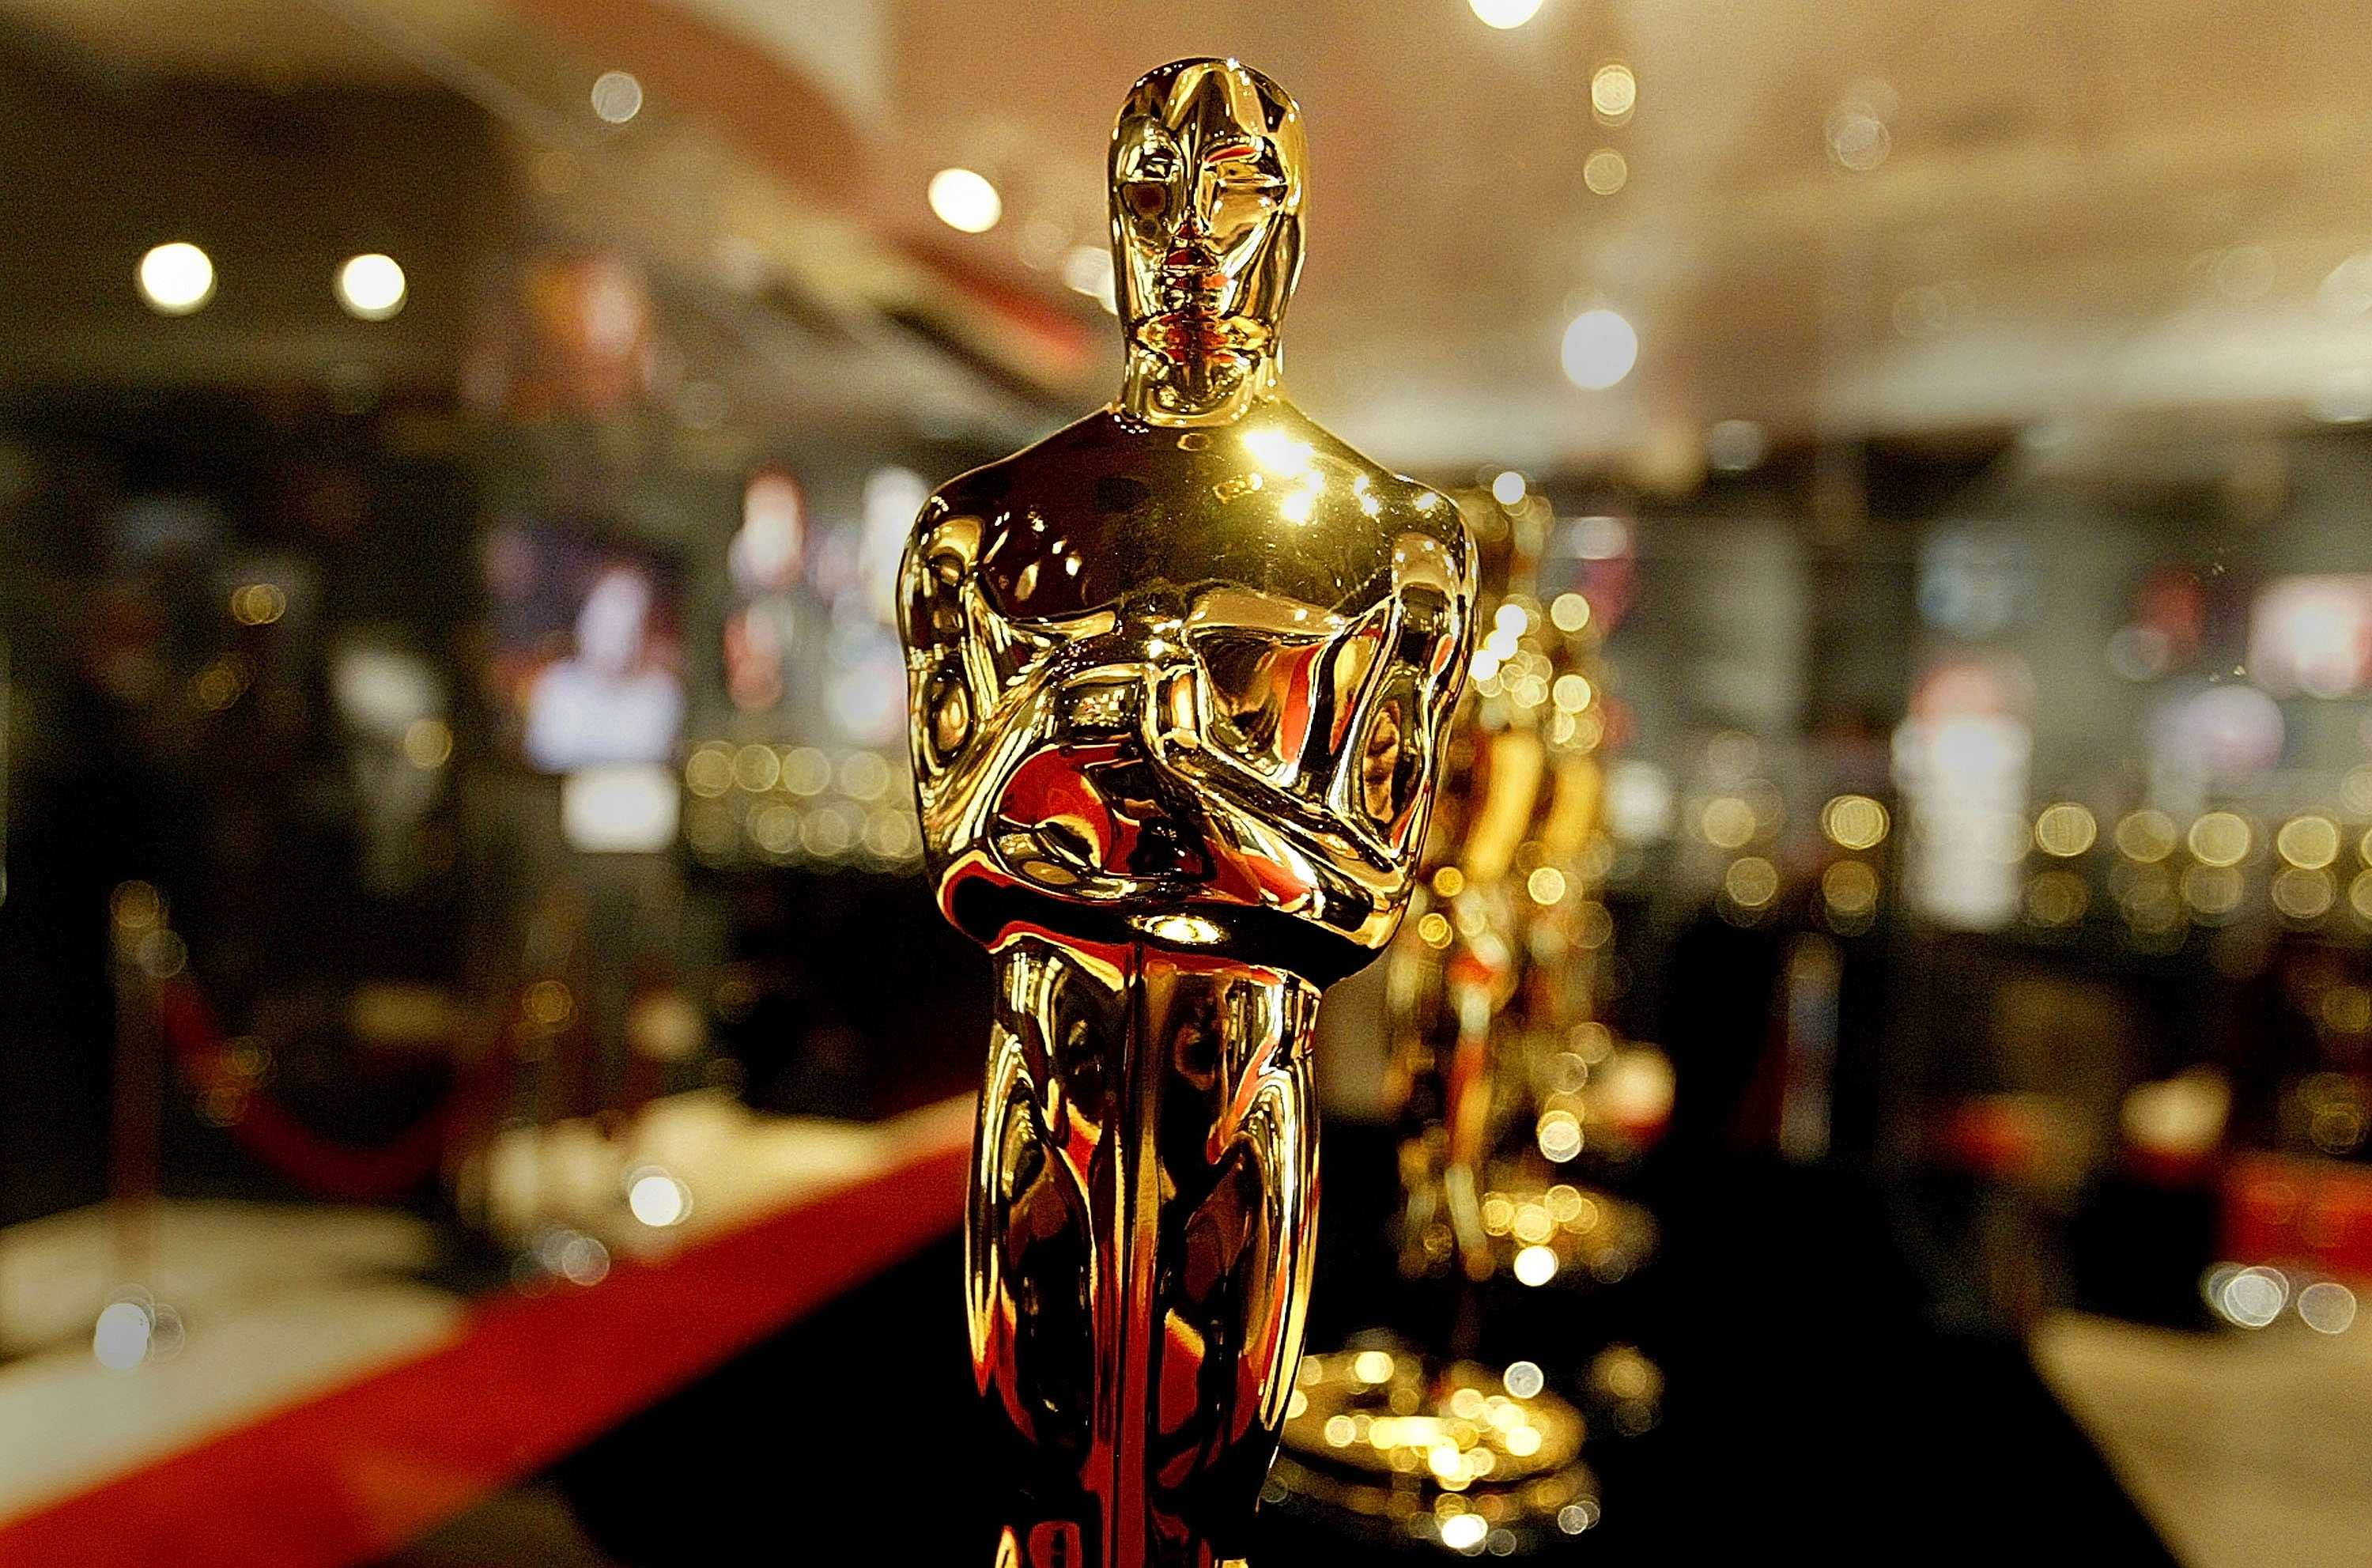 What's in the Oscars goody bags?